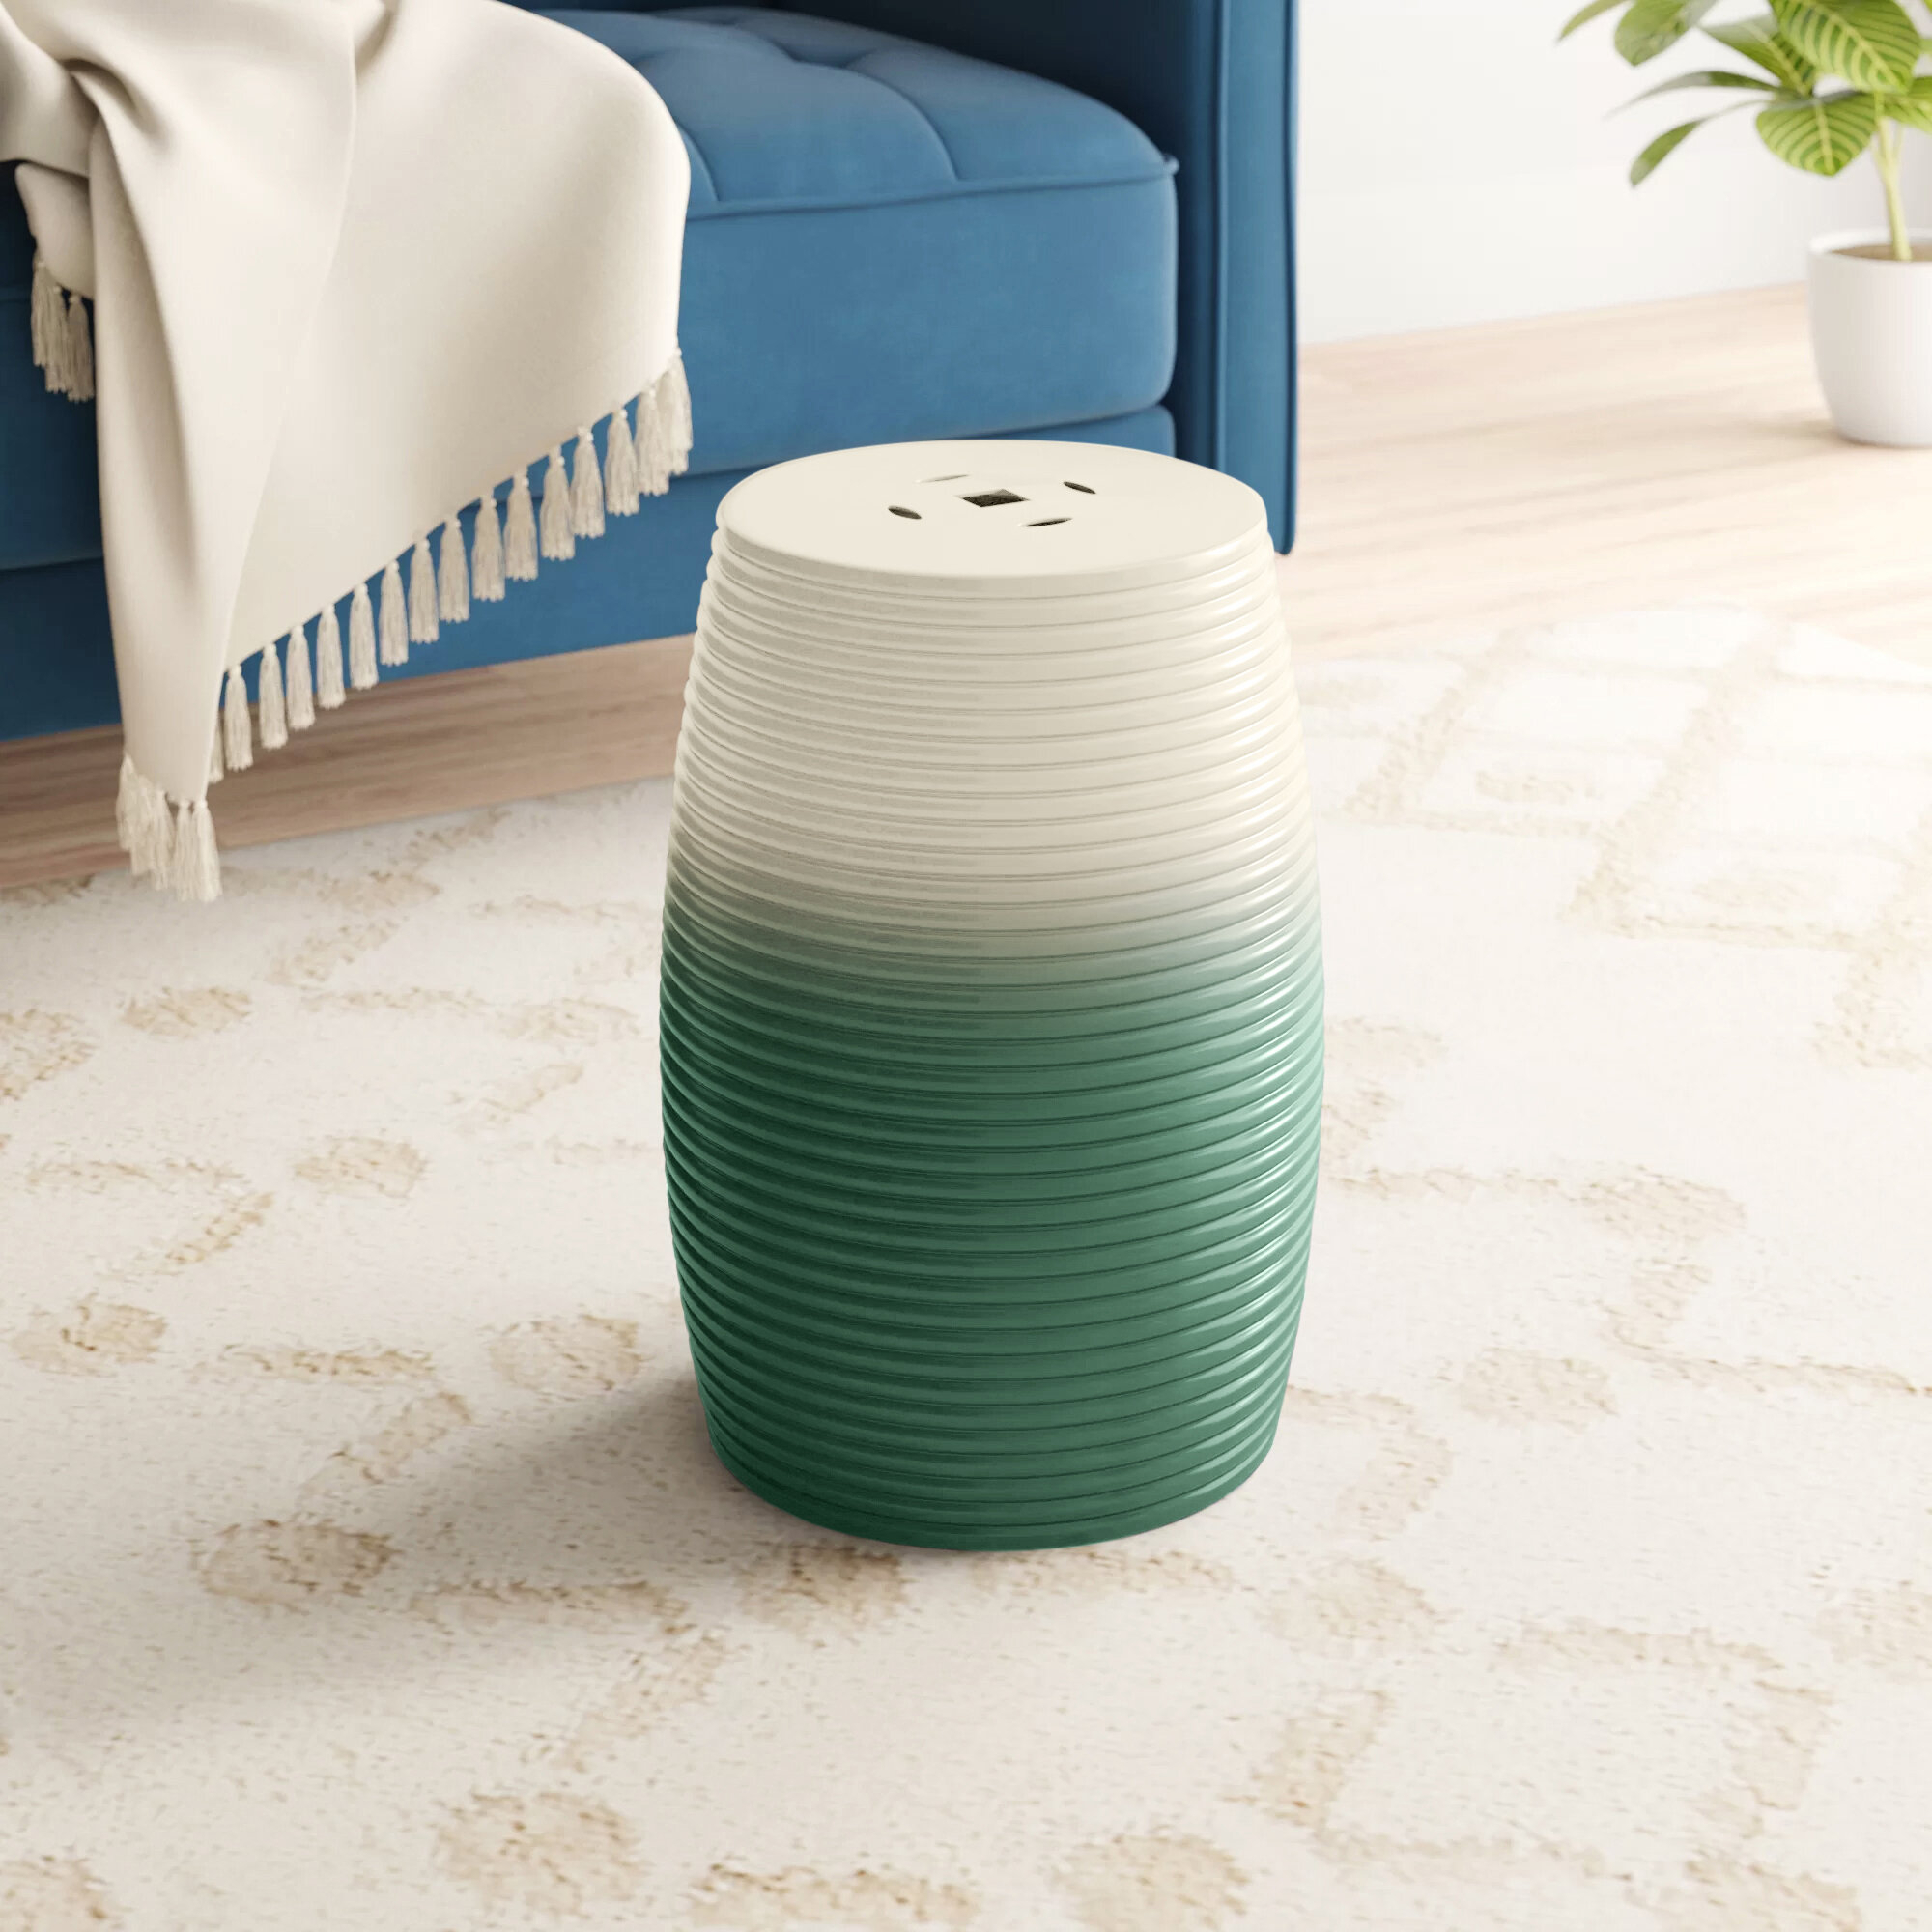 Garden Green Accent Stools You'Ll Love In 2020 | Wayfair Pertaining To Glendale Heights Birds And Butterflies Garden Stools (View 3 of 25)